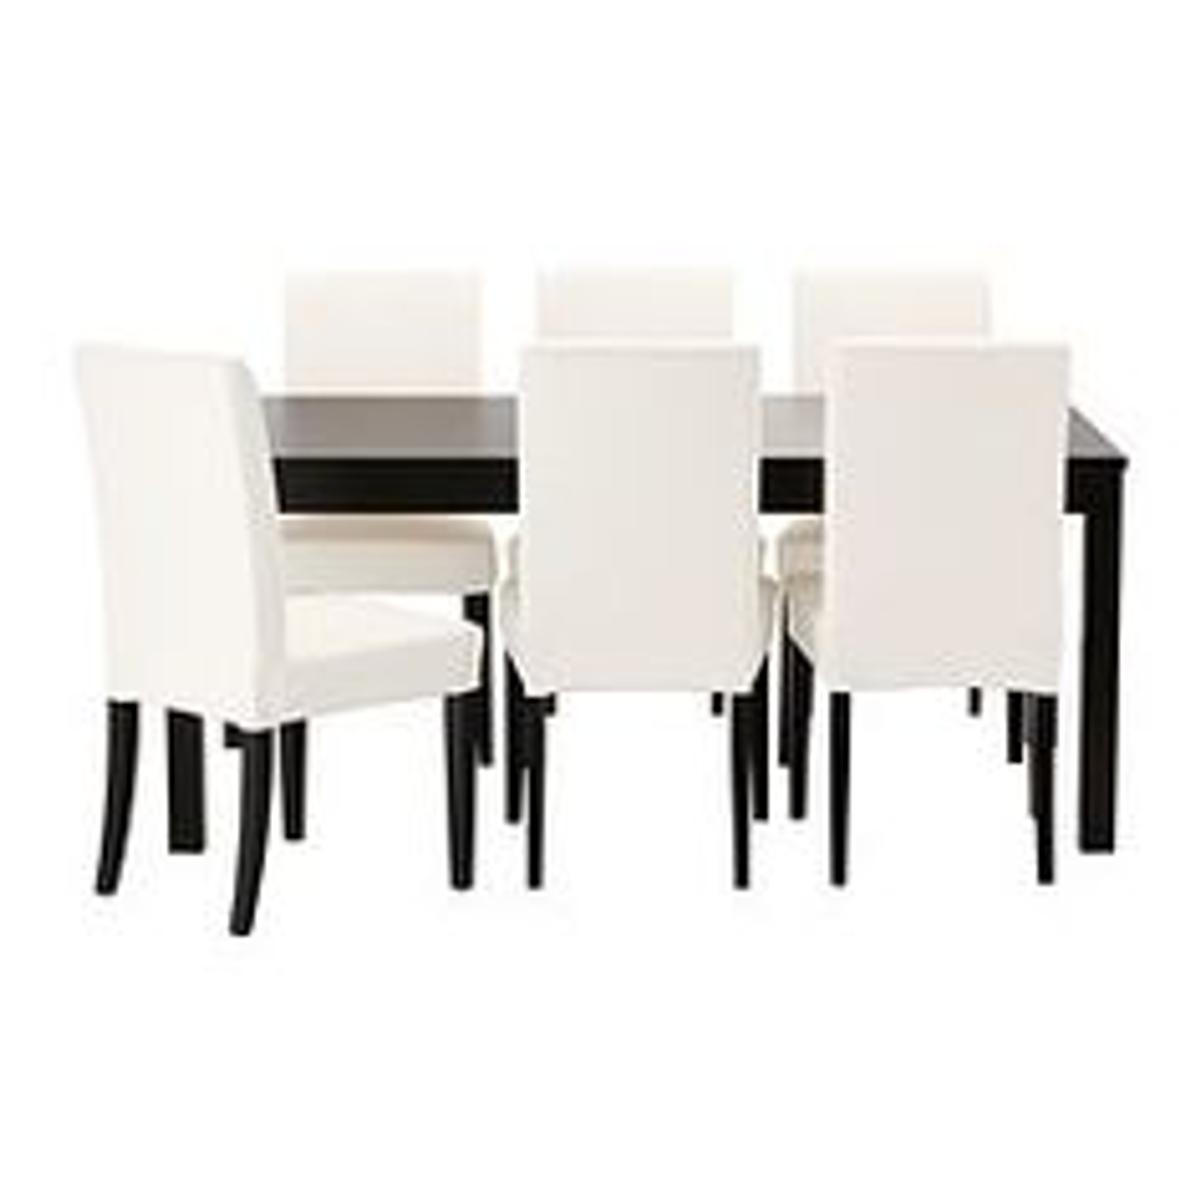 Fodere Per Sedie Ikea.4 Sedie Ikea Henriksdal Con Fodere Bianche In 00151 Roma For